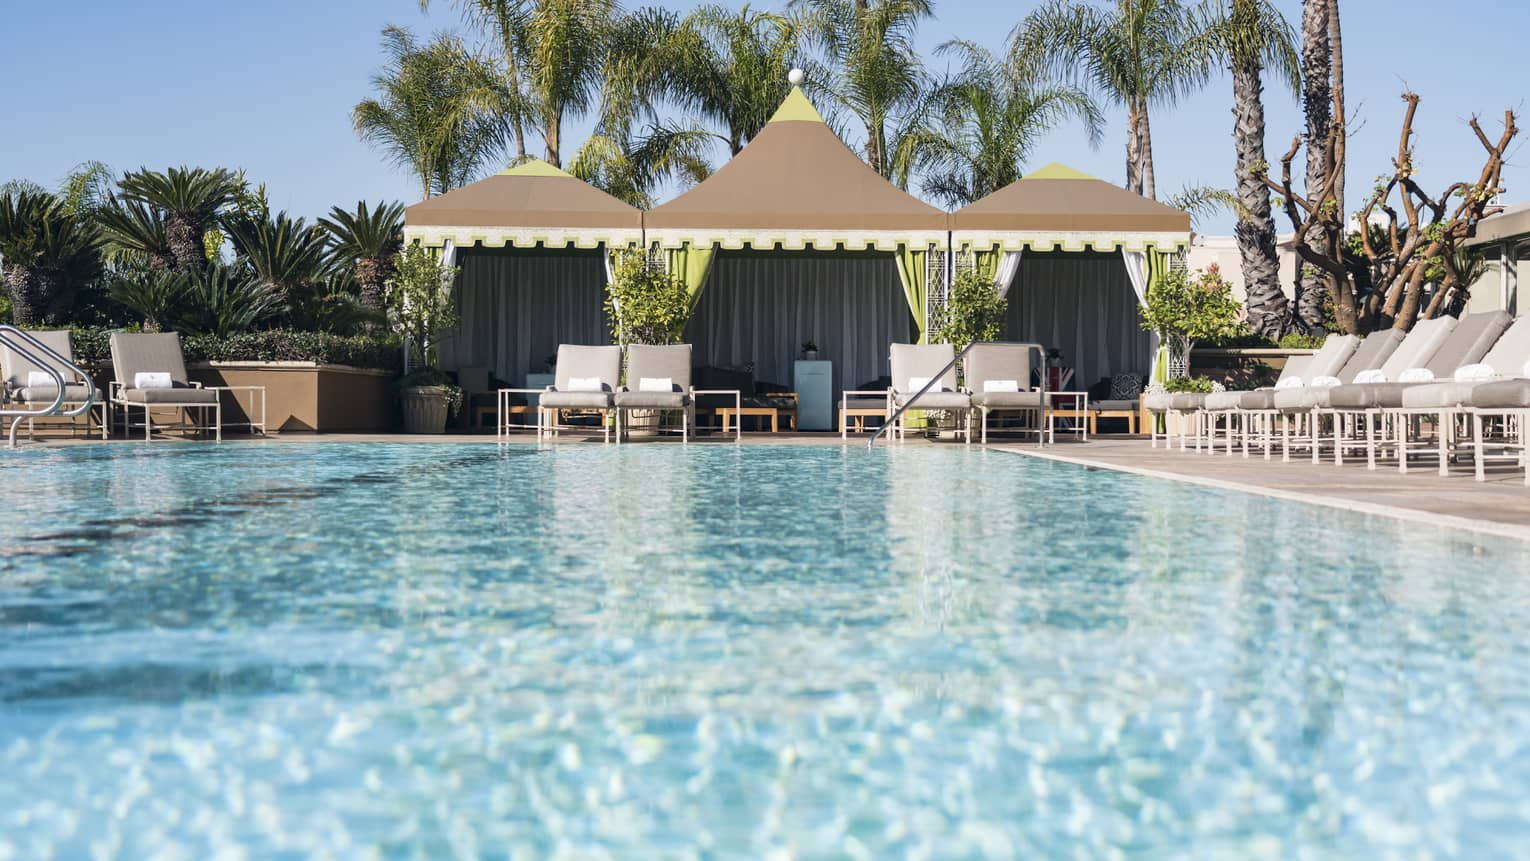 Lounge chairs, cabanas around large outdoor swimming pool under sunny sky